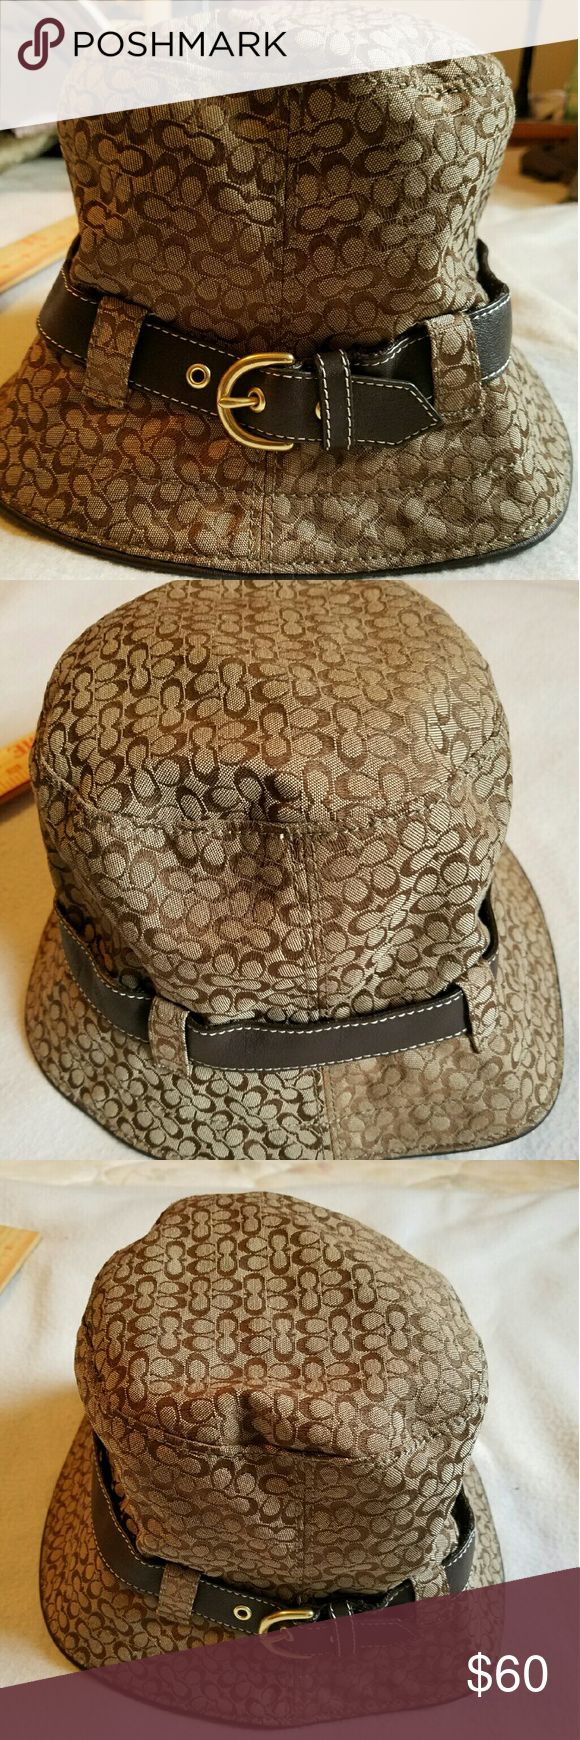 Coach hat. Beautiful coach hat worn only a handful of times. Size M/L. Runs kind of big though. Coach Accessories Hats